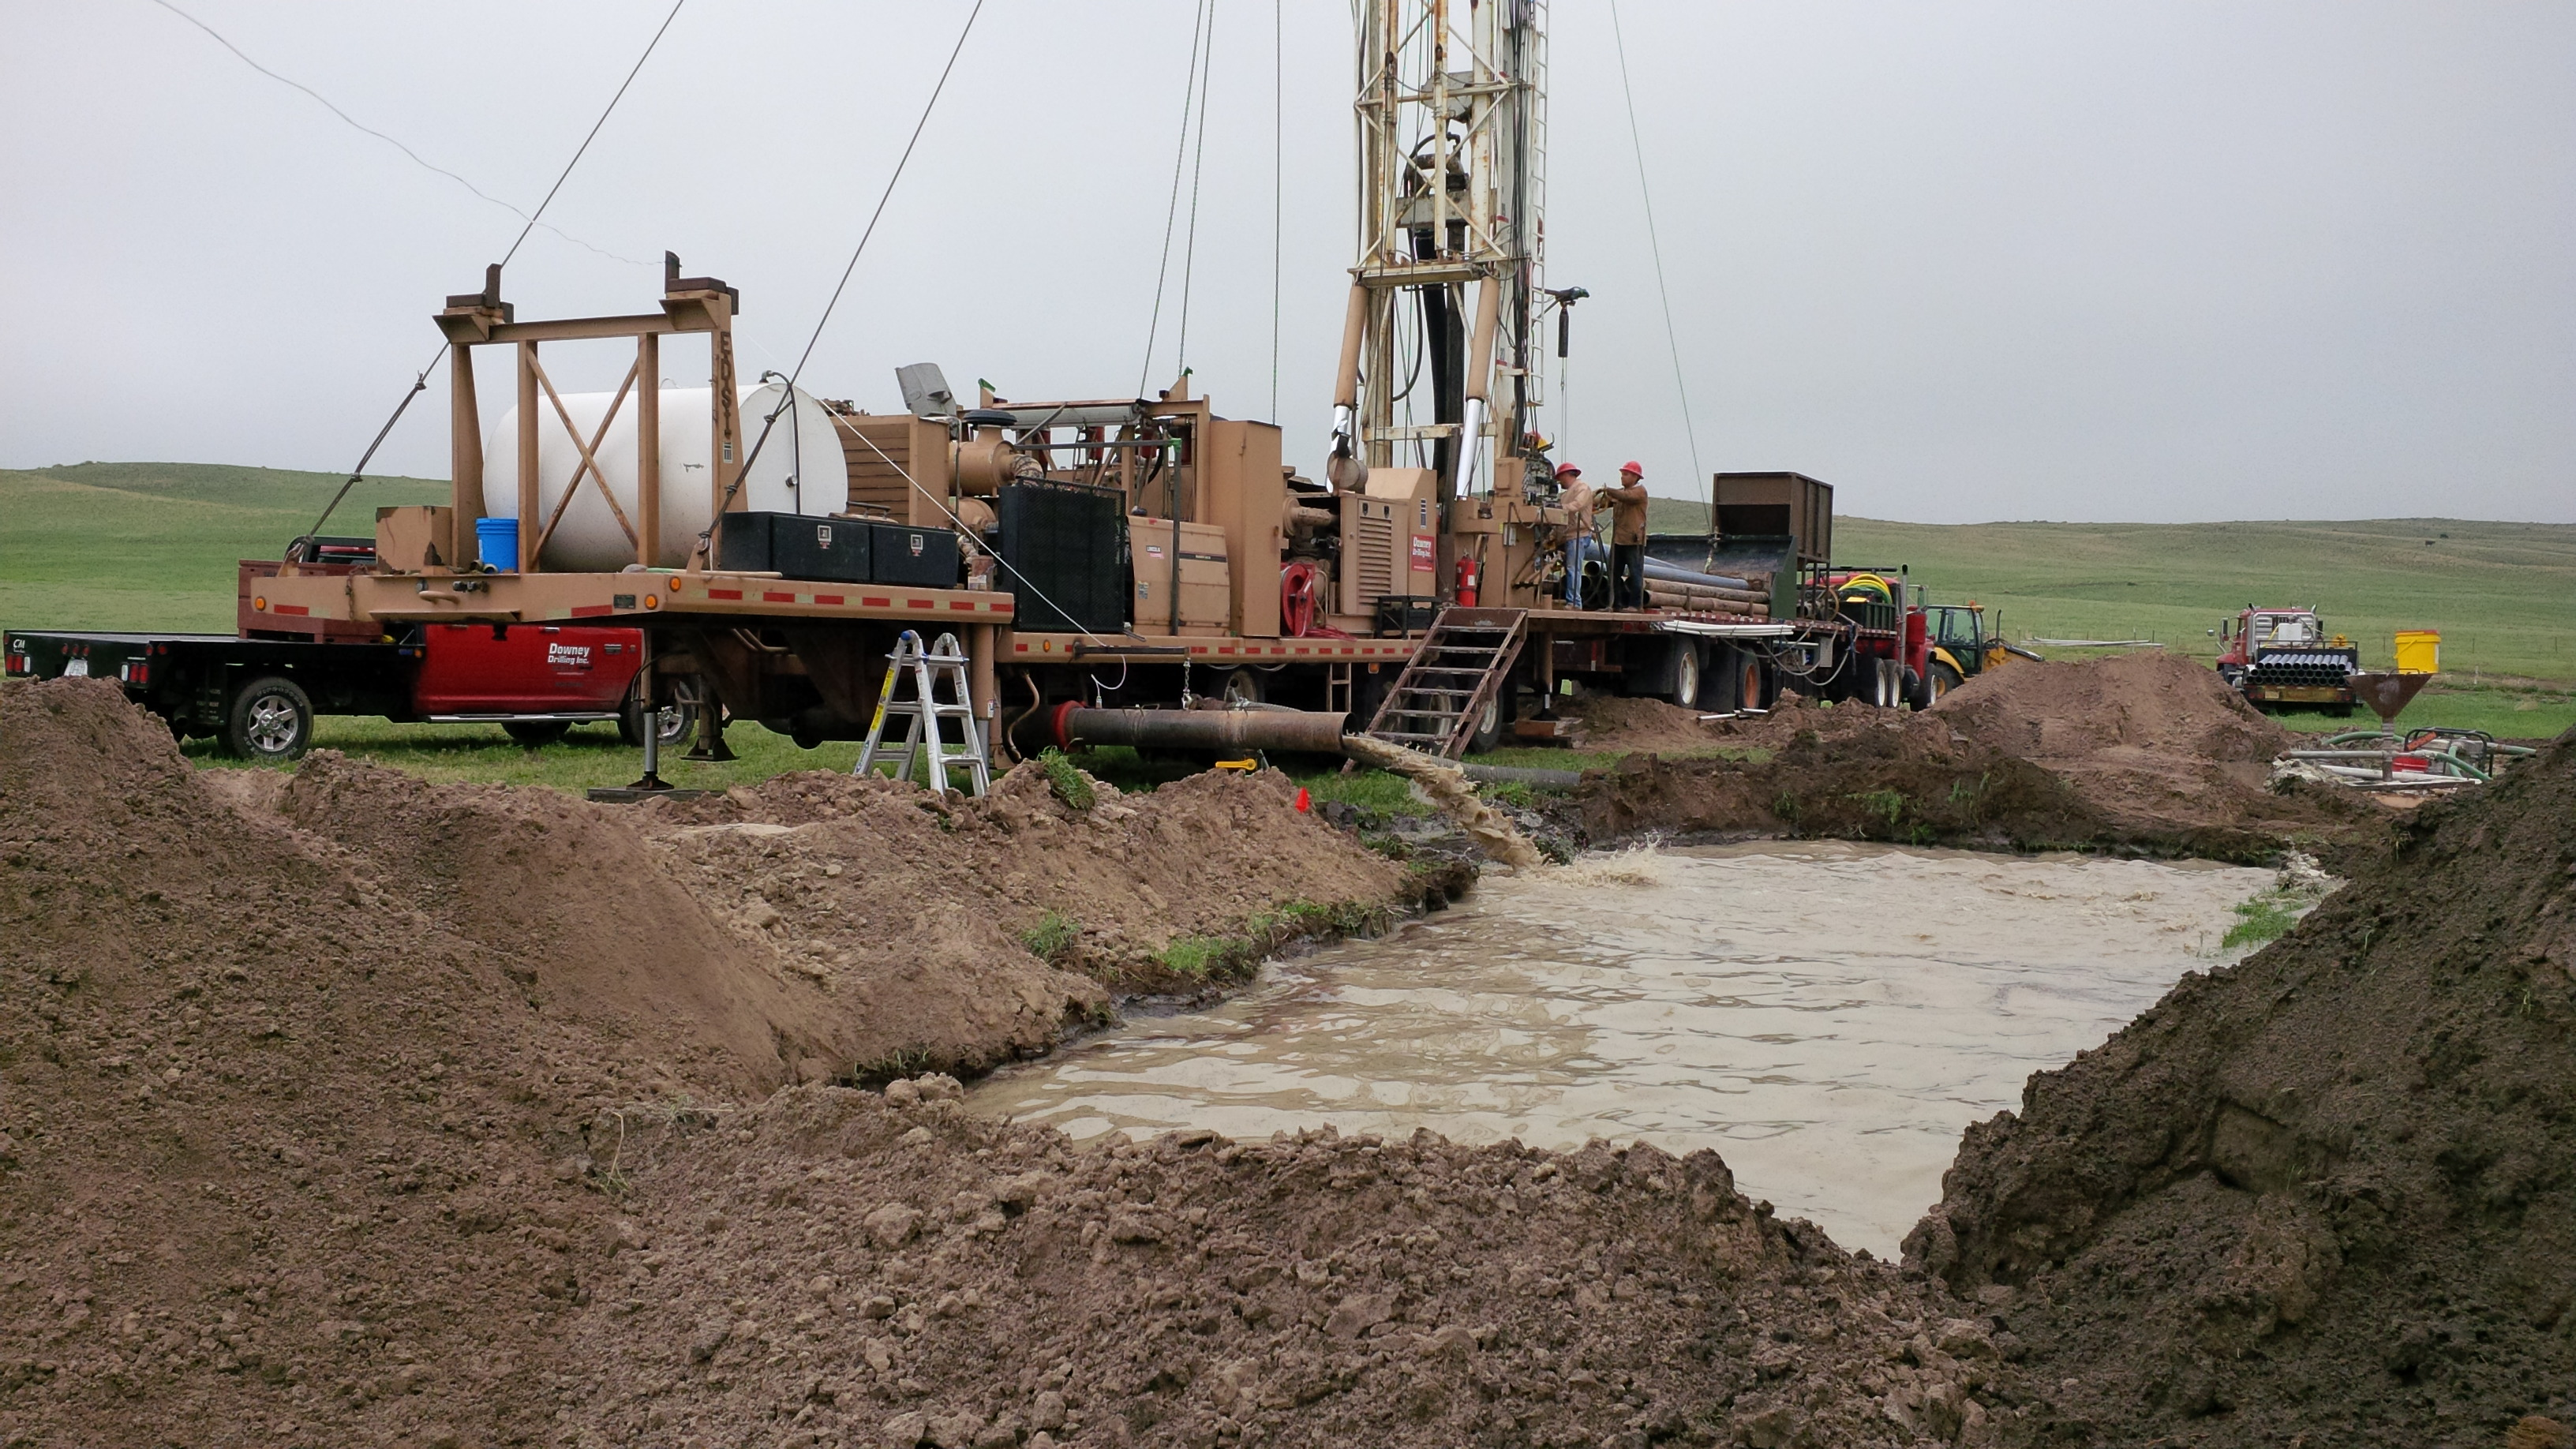 UNL-led team drills 1,700+ feet in test-hole project | Nebraska Today ...